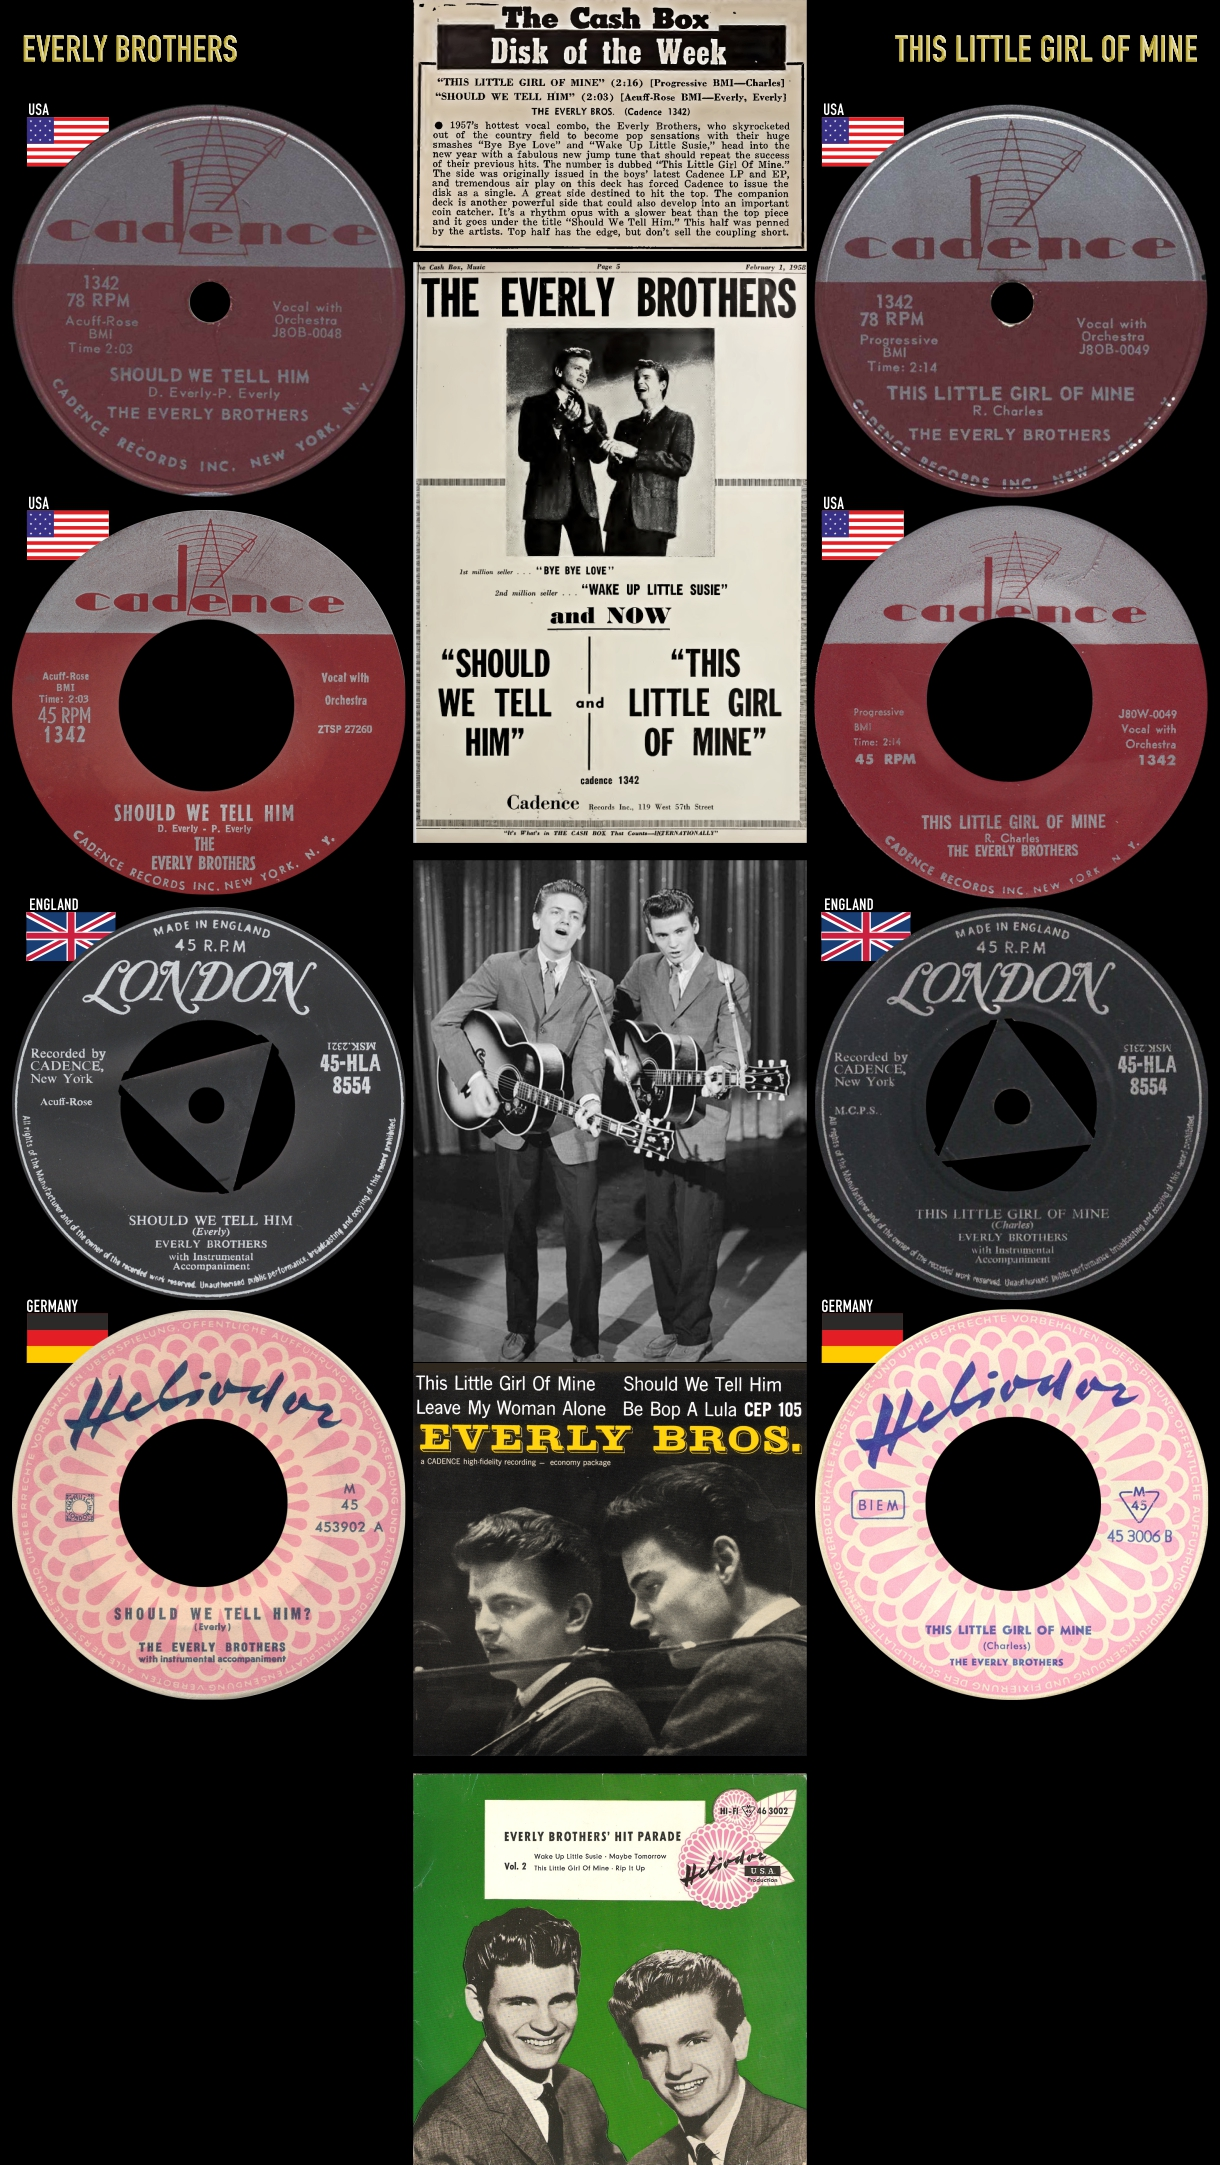 580208_Everly Brothers_This Little Girl Of Mine_Should We Tell Him